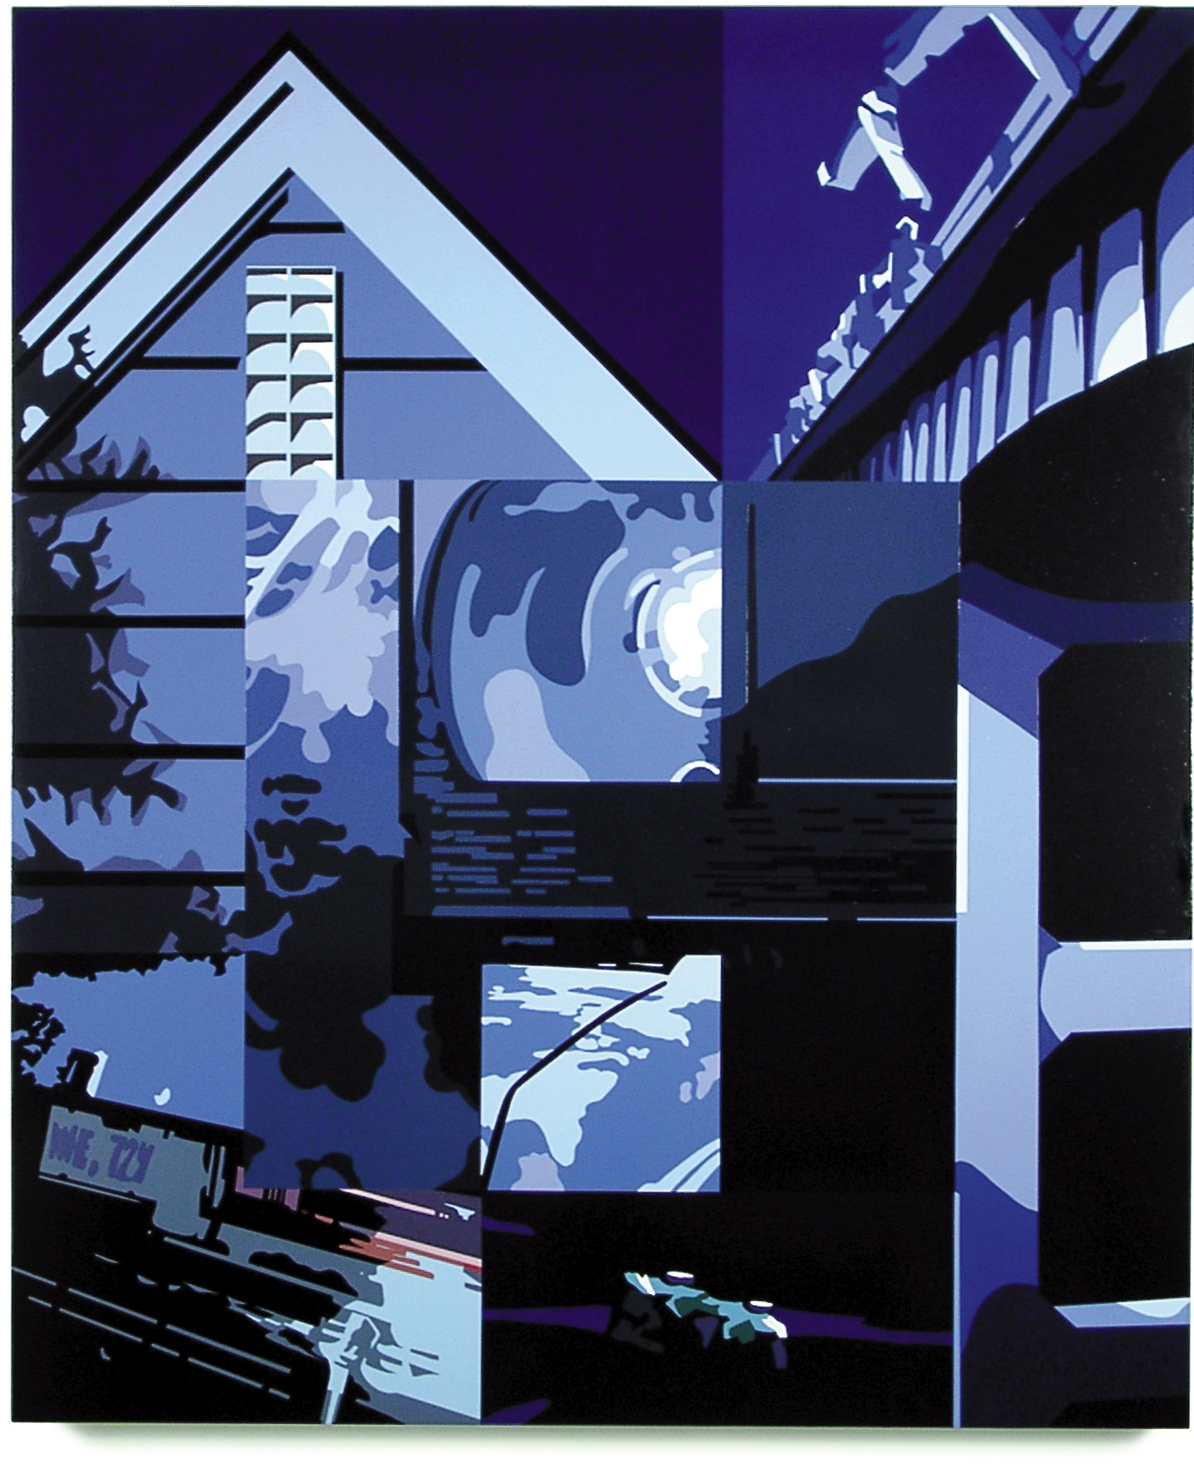 Moonlight Sonata,   2001, 57 x 47.5, Oil Enamel on Canvas